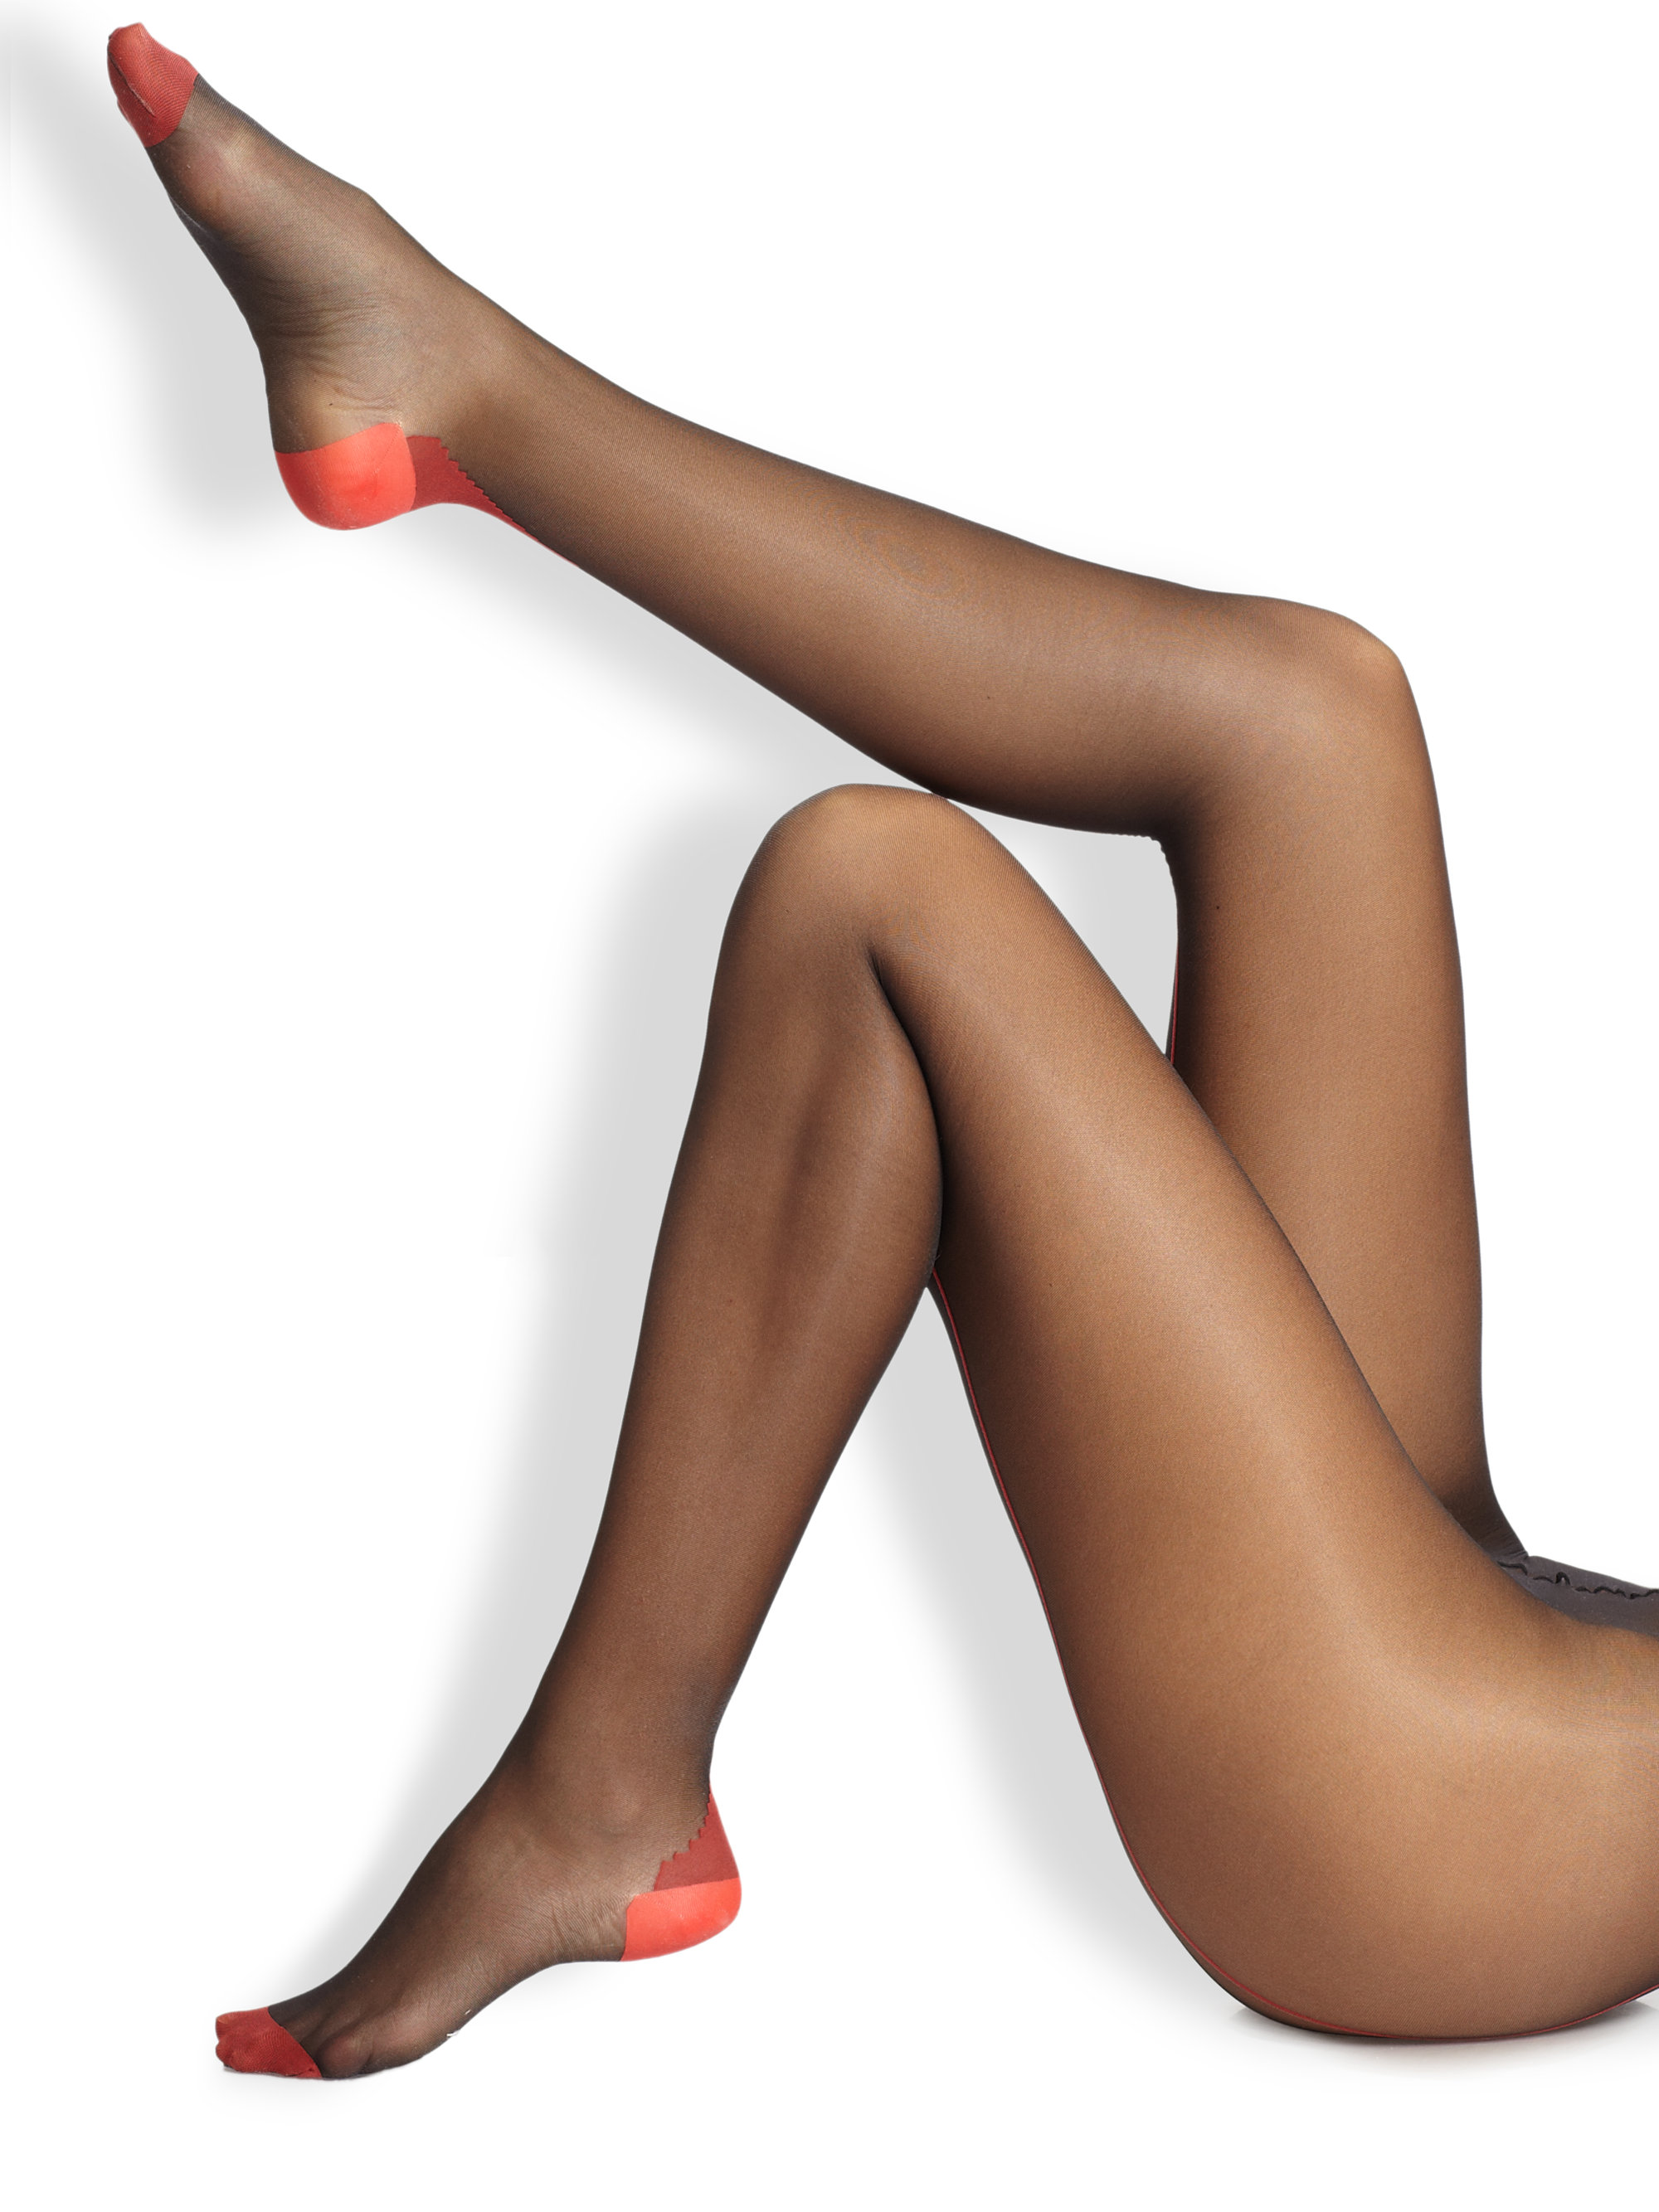 Reinforce heel and toe pantyhose